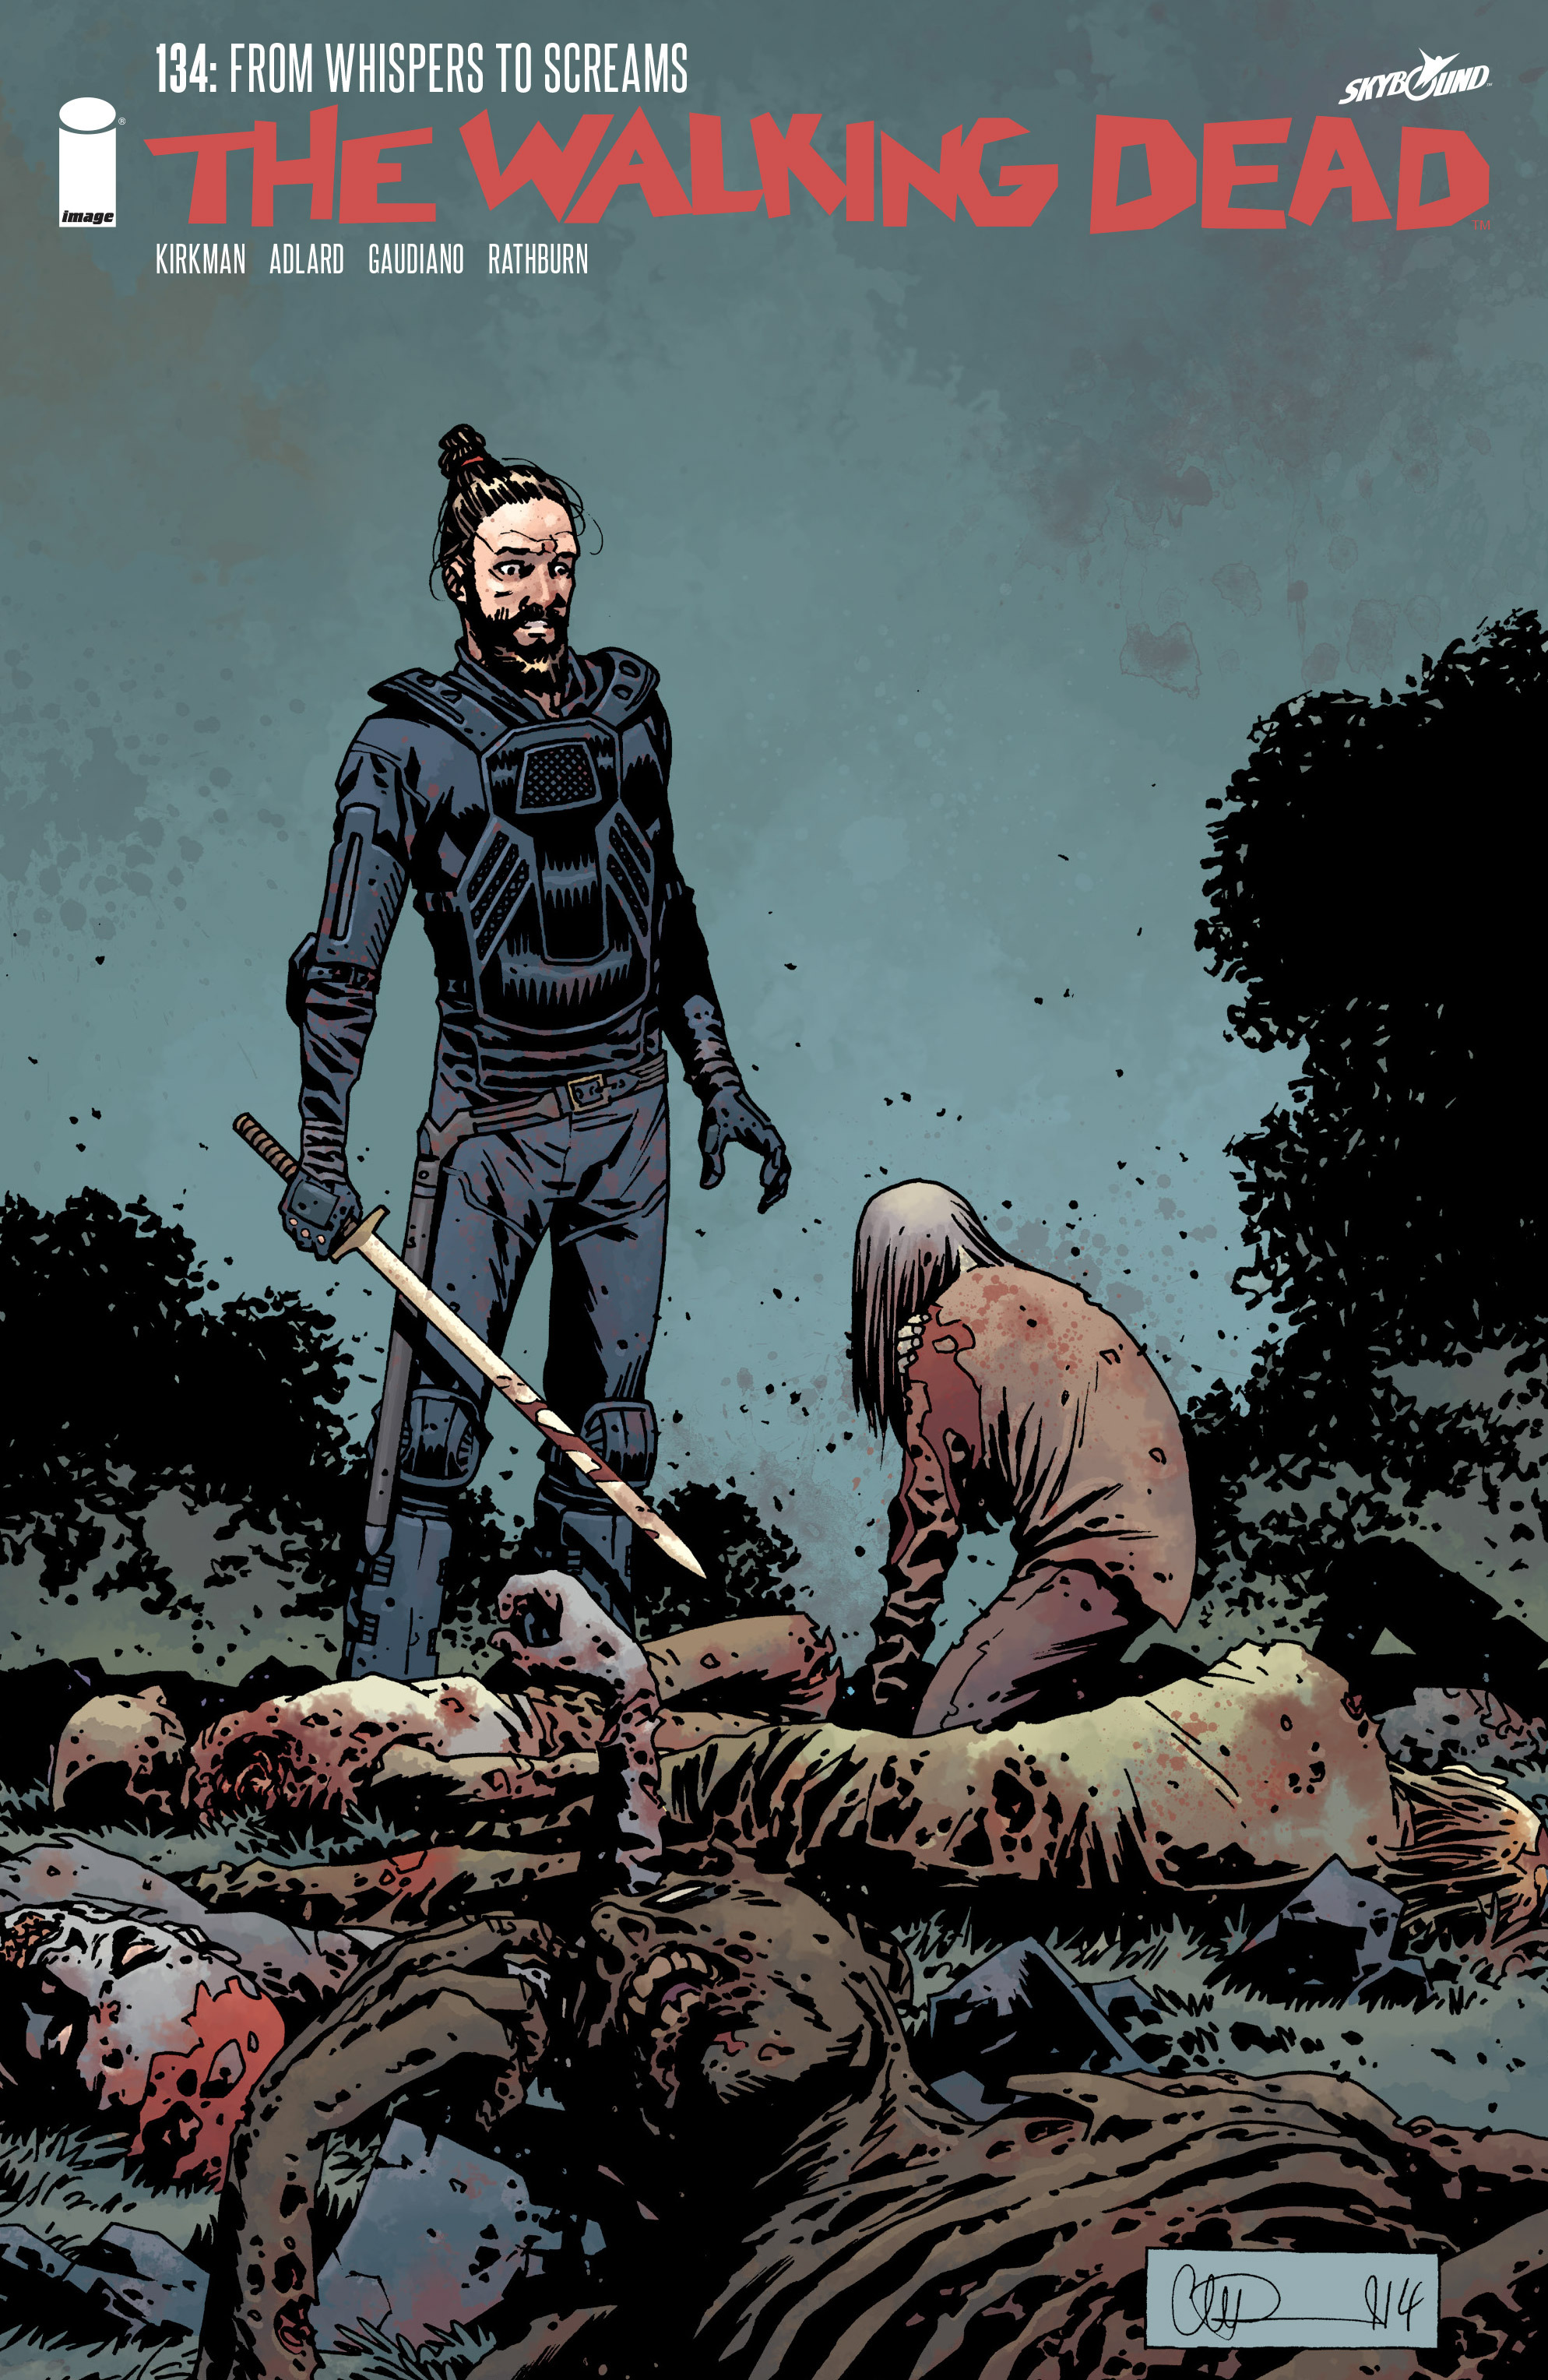 The Walking Dead 134 Page 1